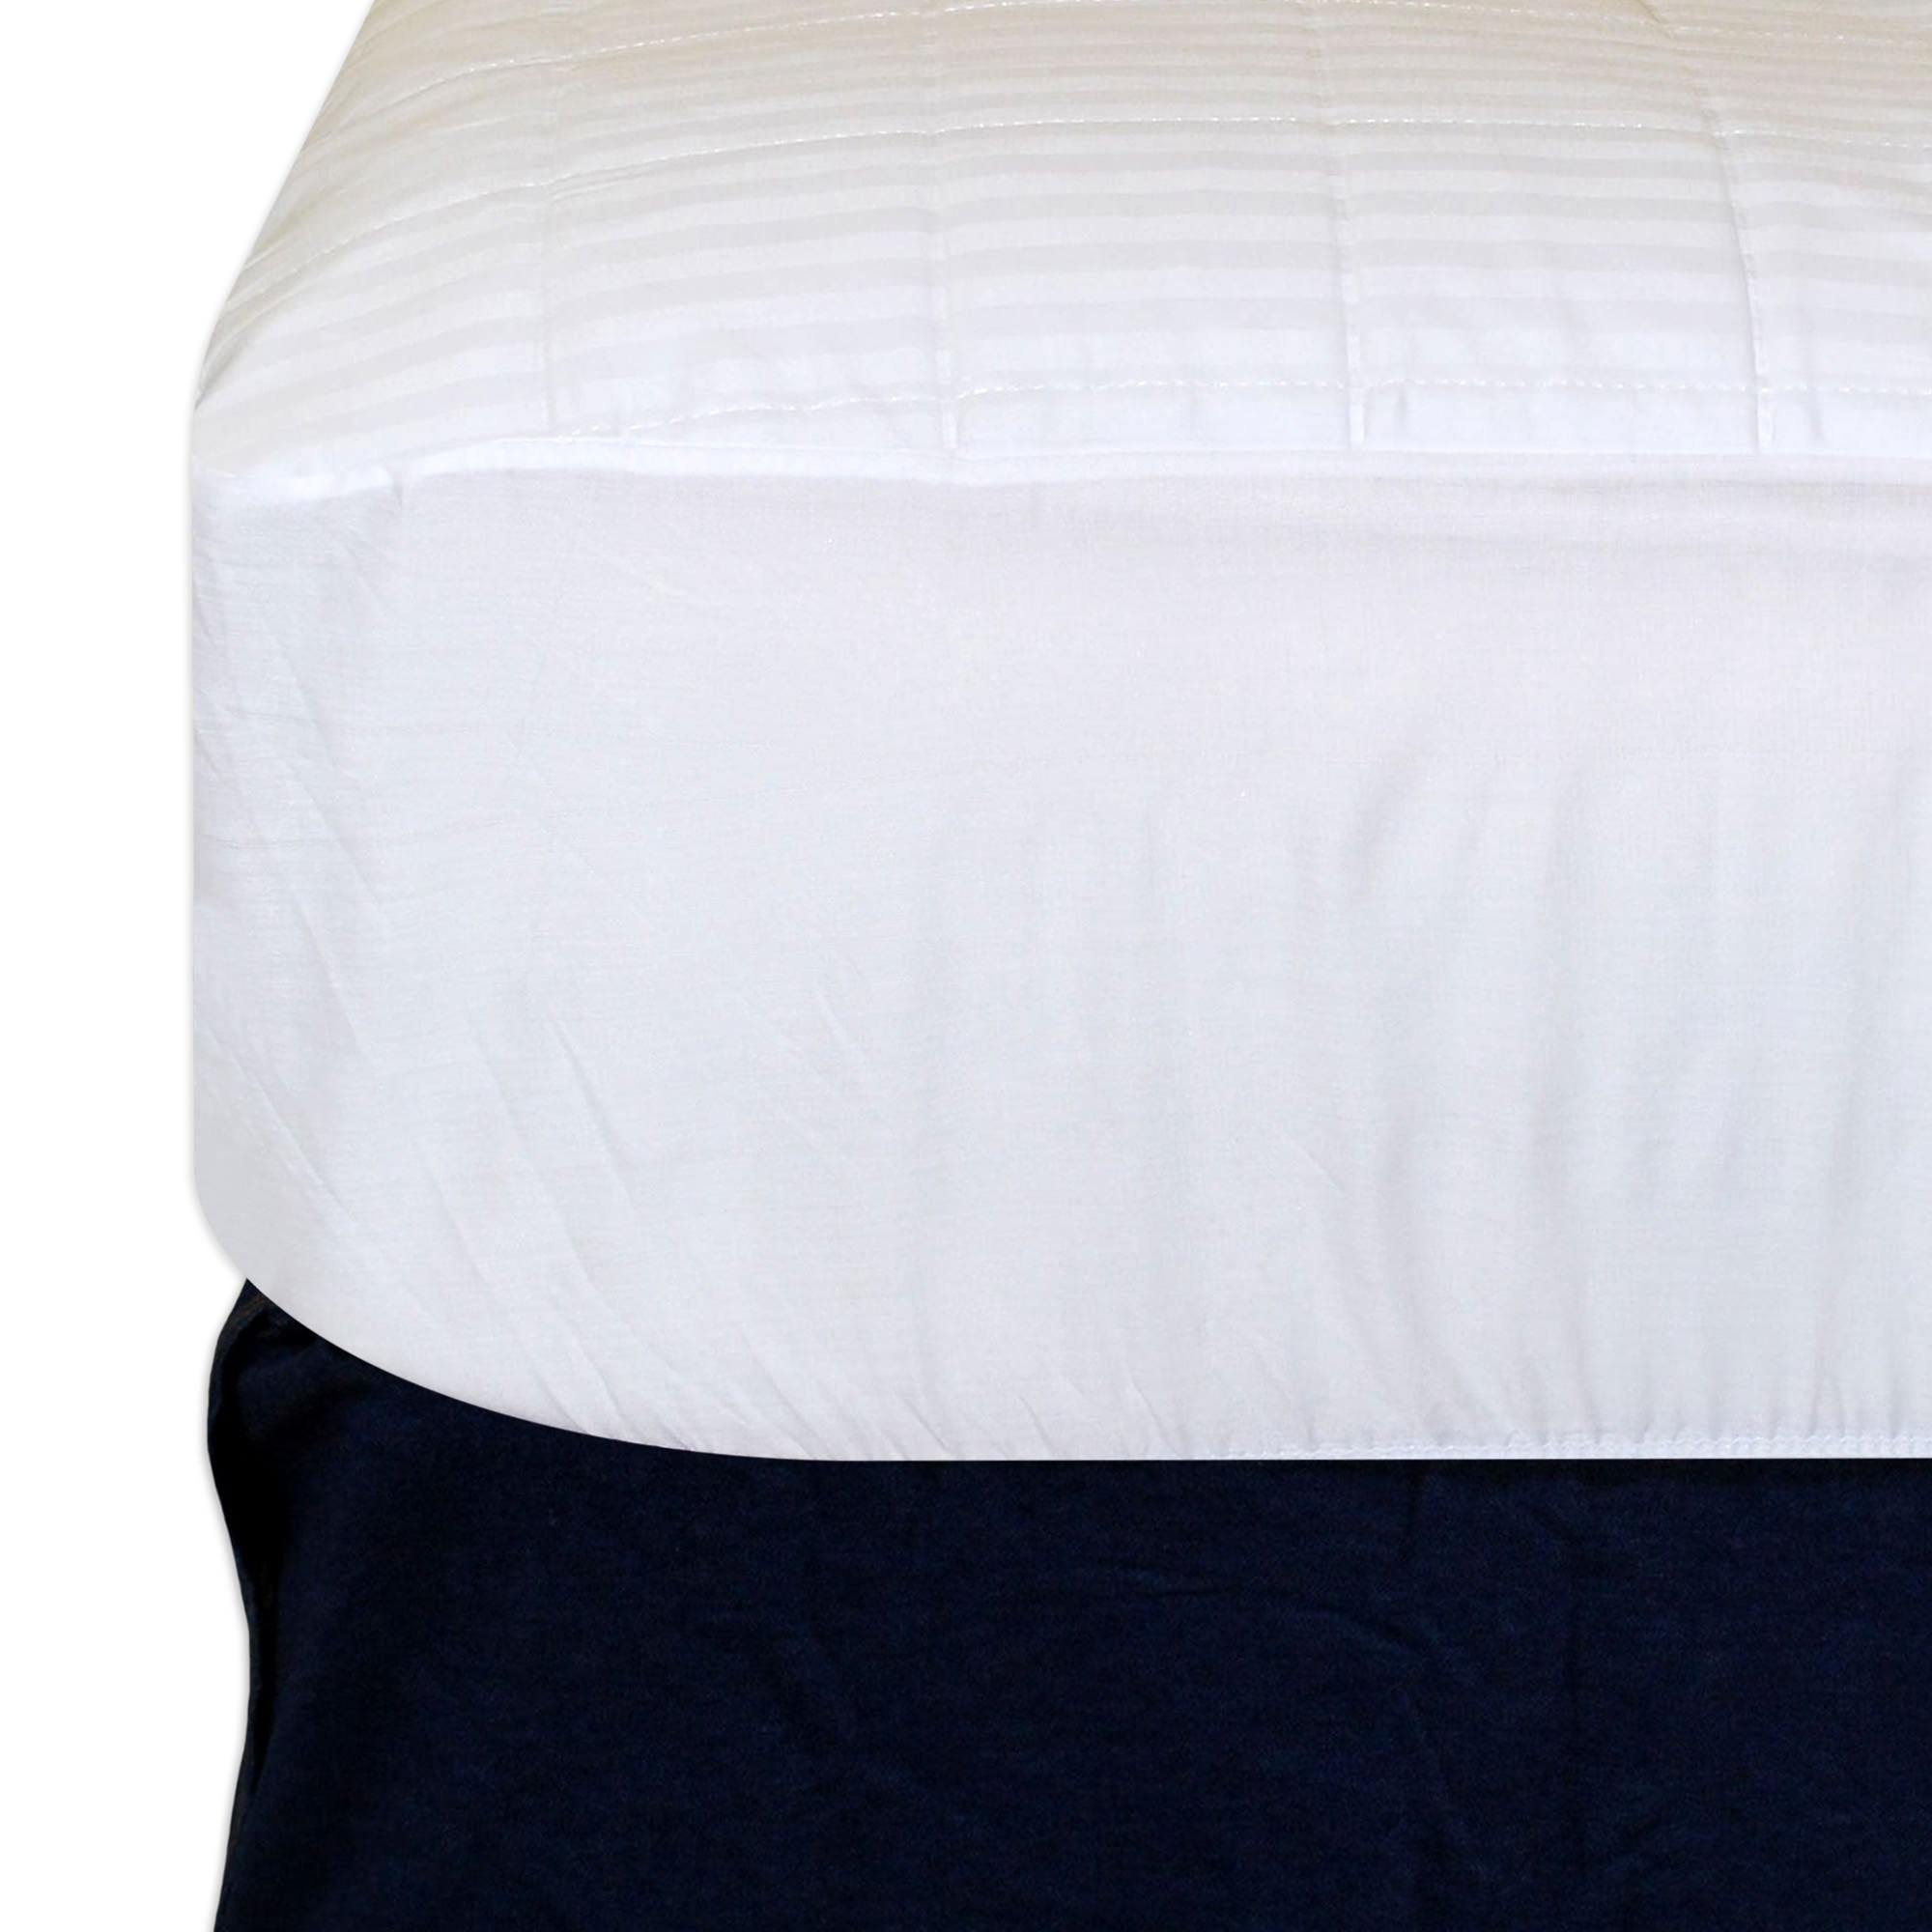 Dry Defender Deluxe Breathable Waterproof Mattress Pad